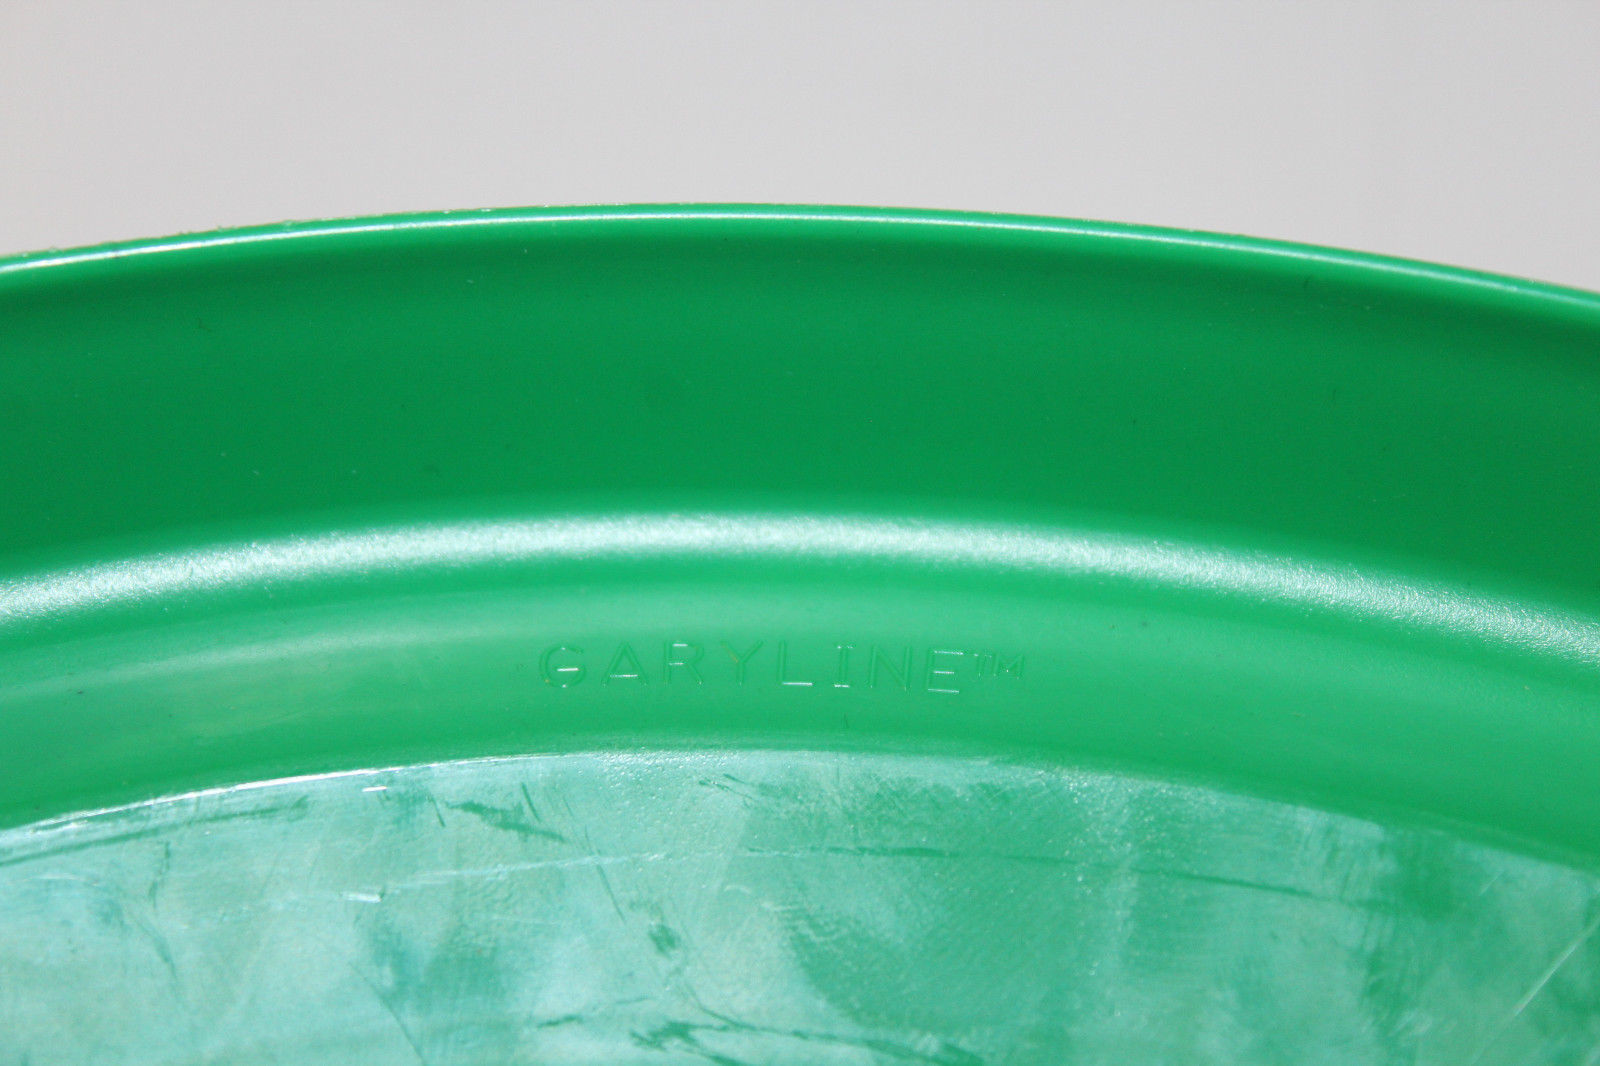 Castrol Oil Green Frisbee Garyline Made in USA image 5